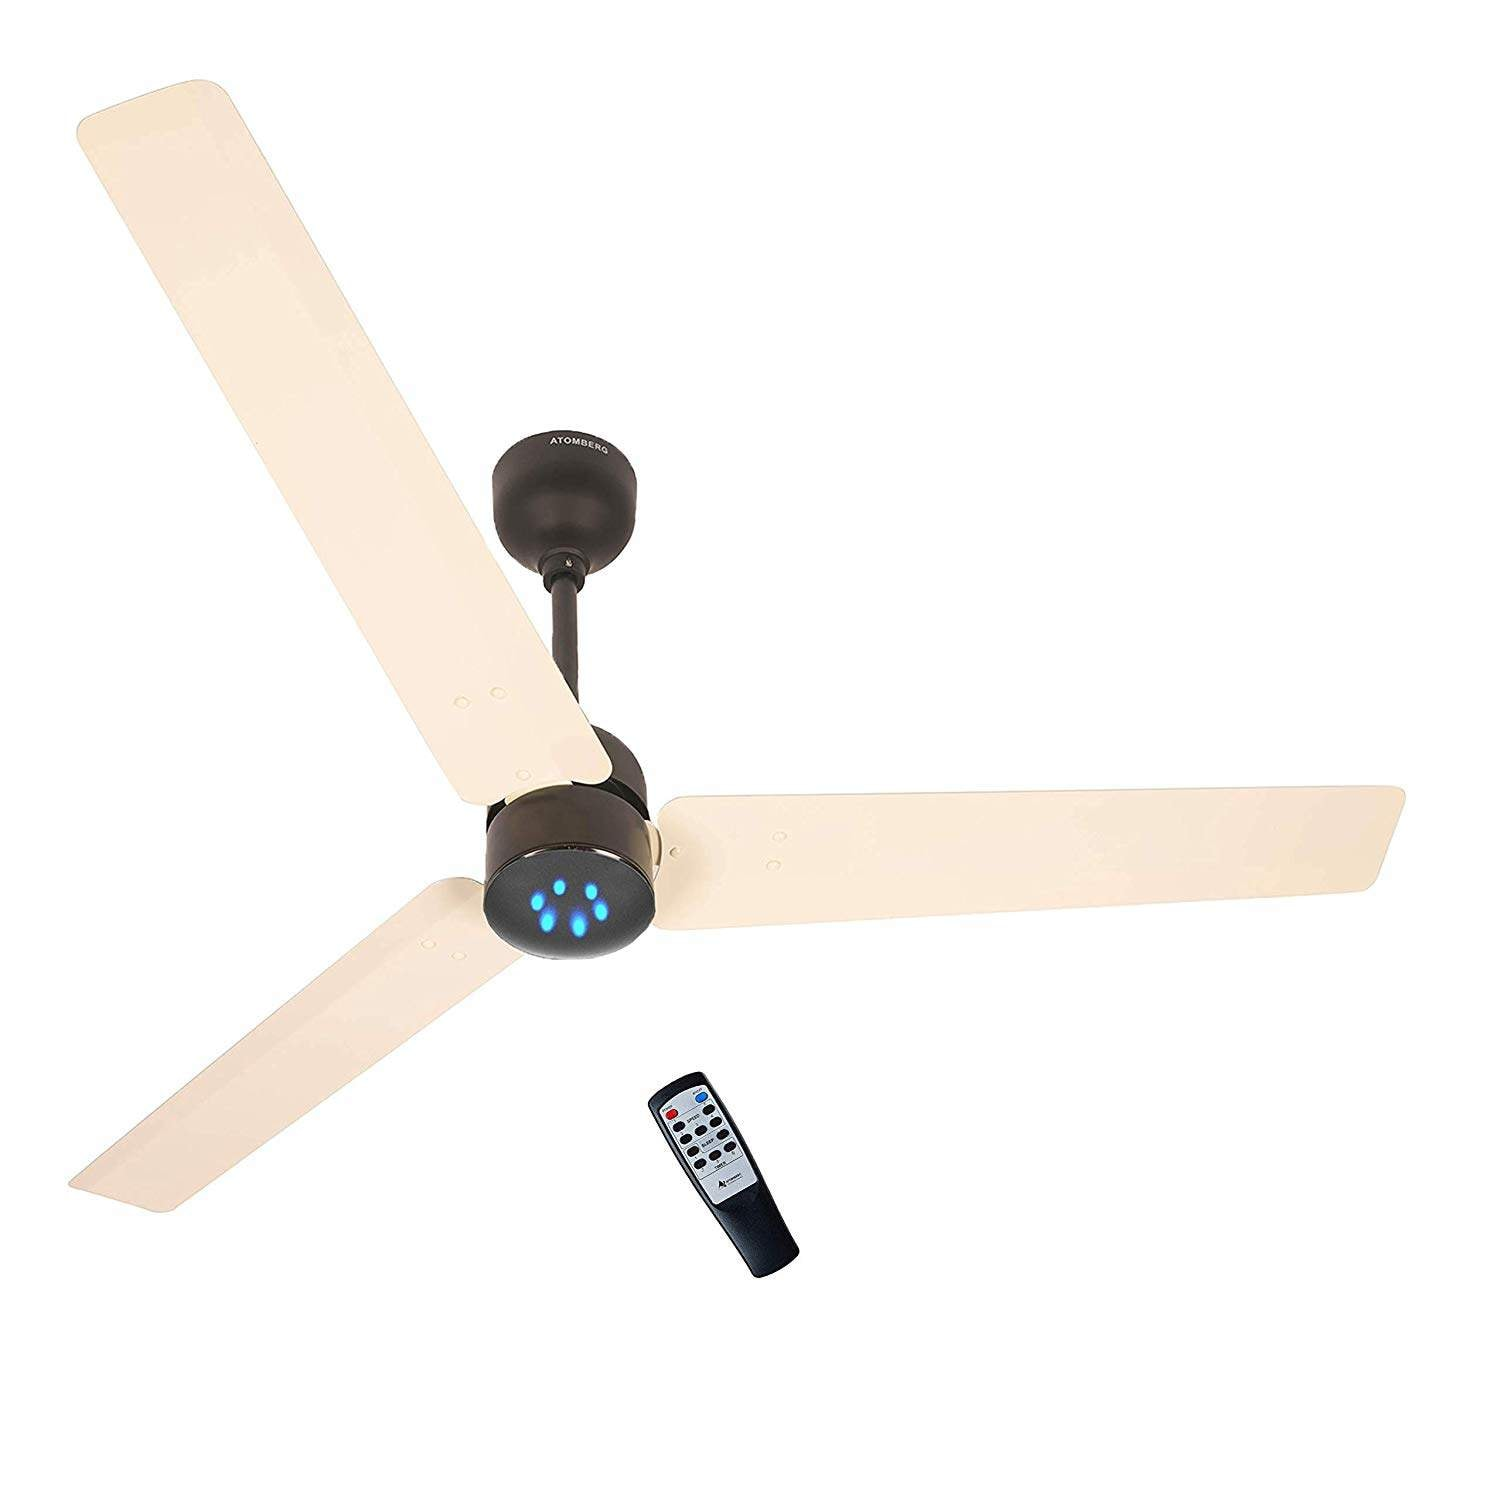 Buy Gorilla Renesa Energy Saving 5 Star Rated Ceiling Fan With Remote Control And Bldc Motor1200mm Ivory Black Features Price Reviews Online In India Justdial